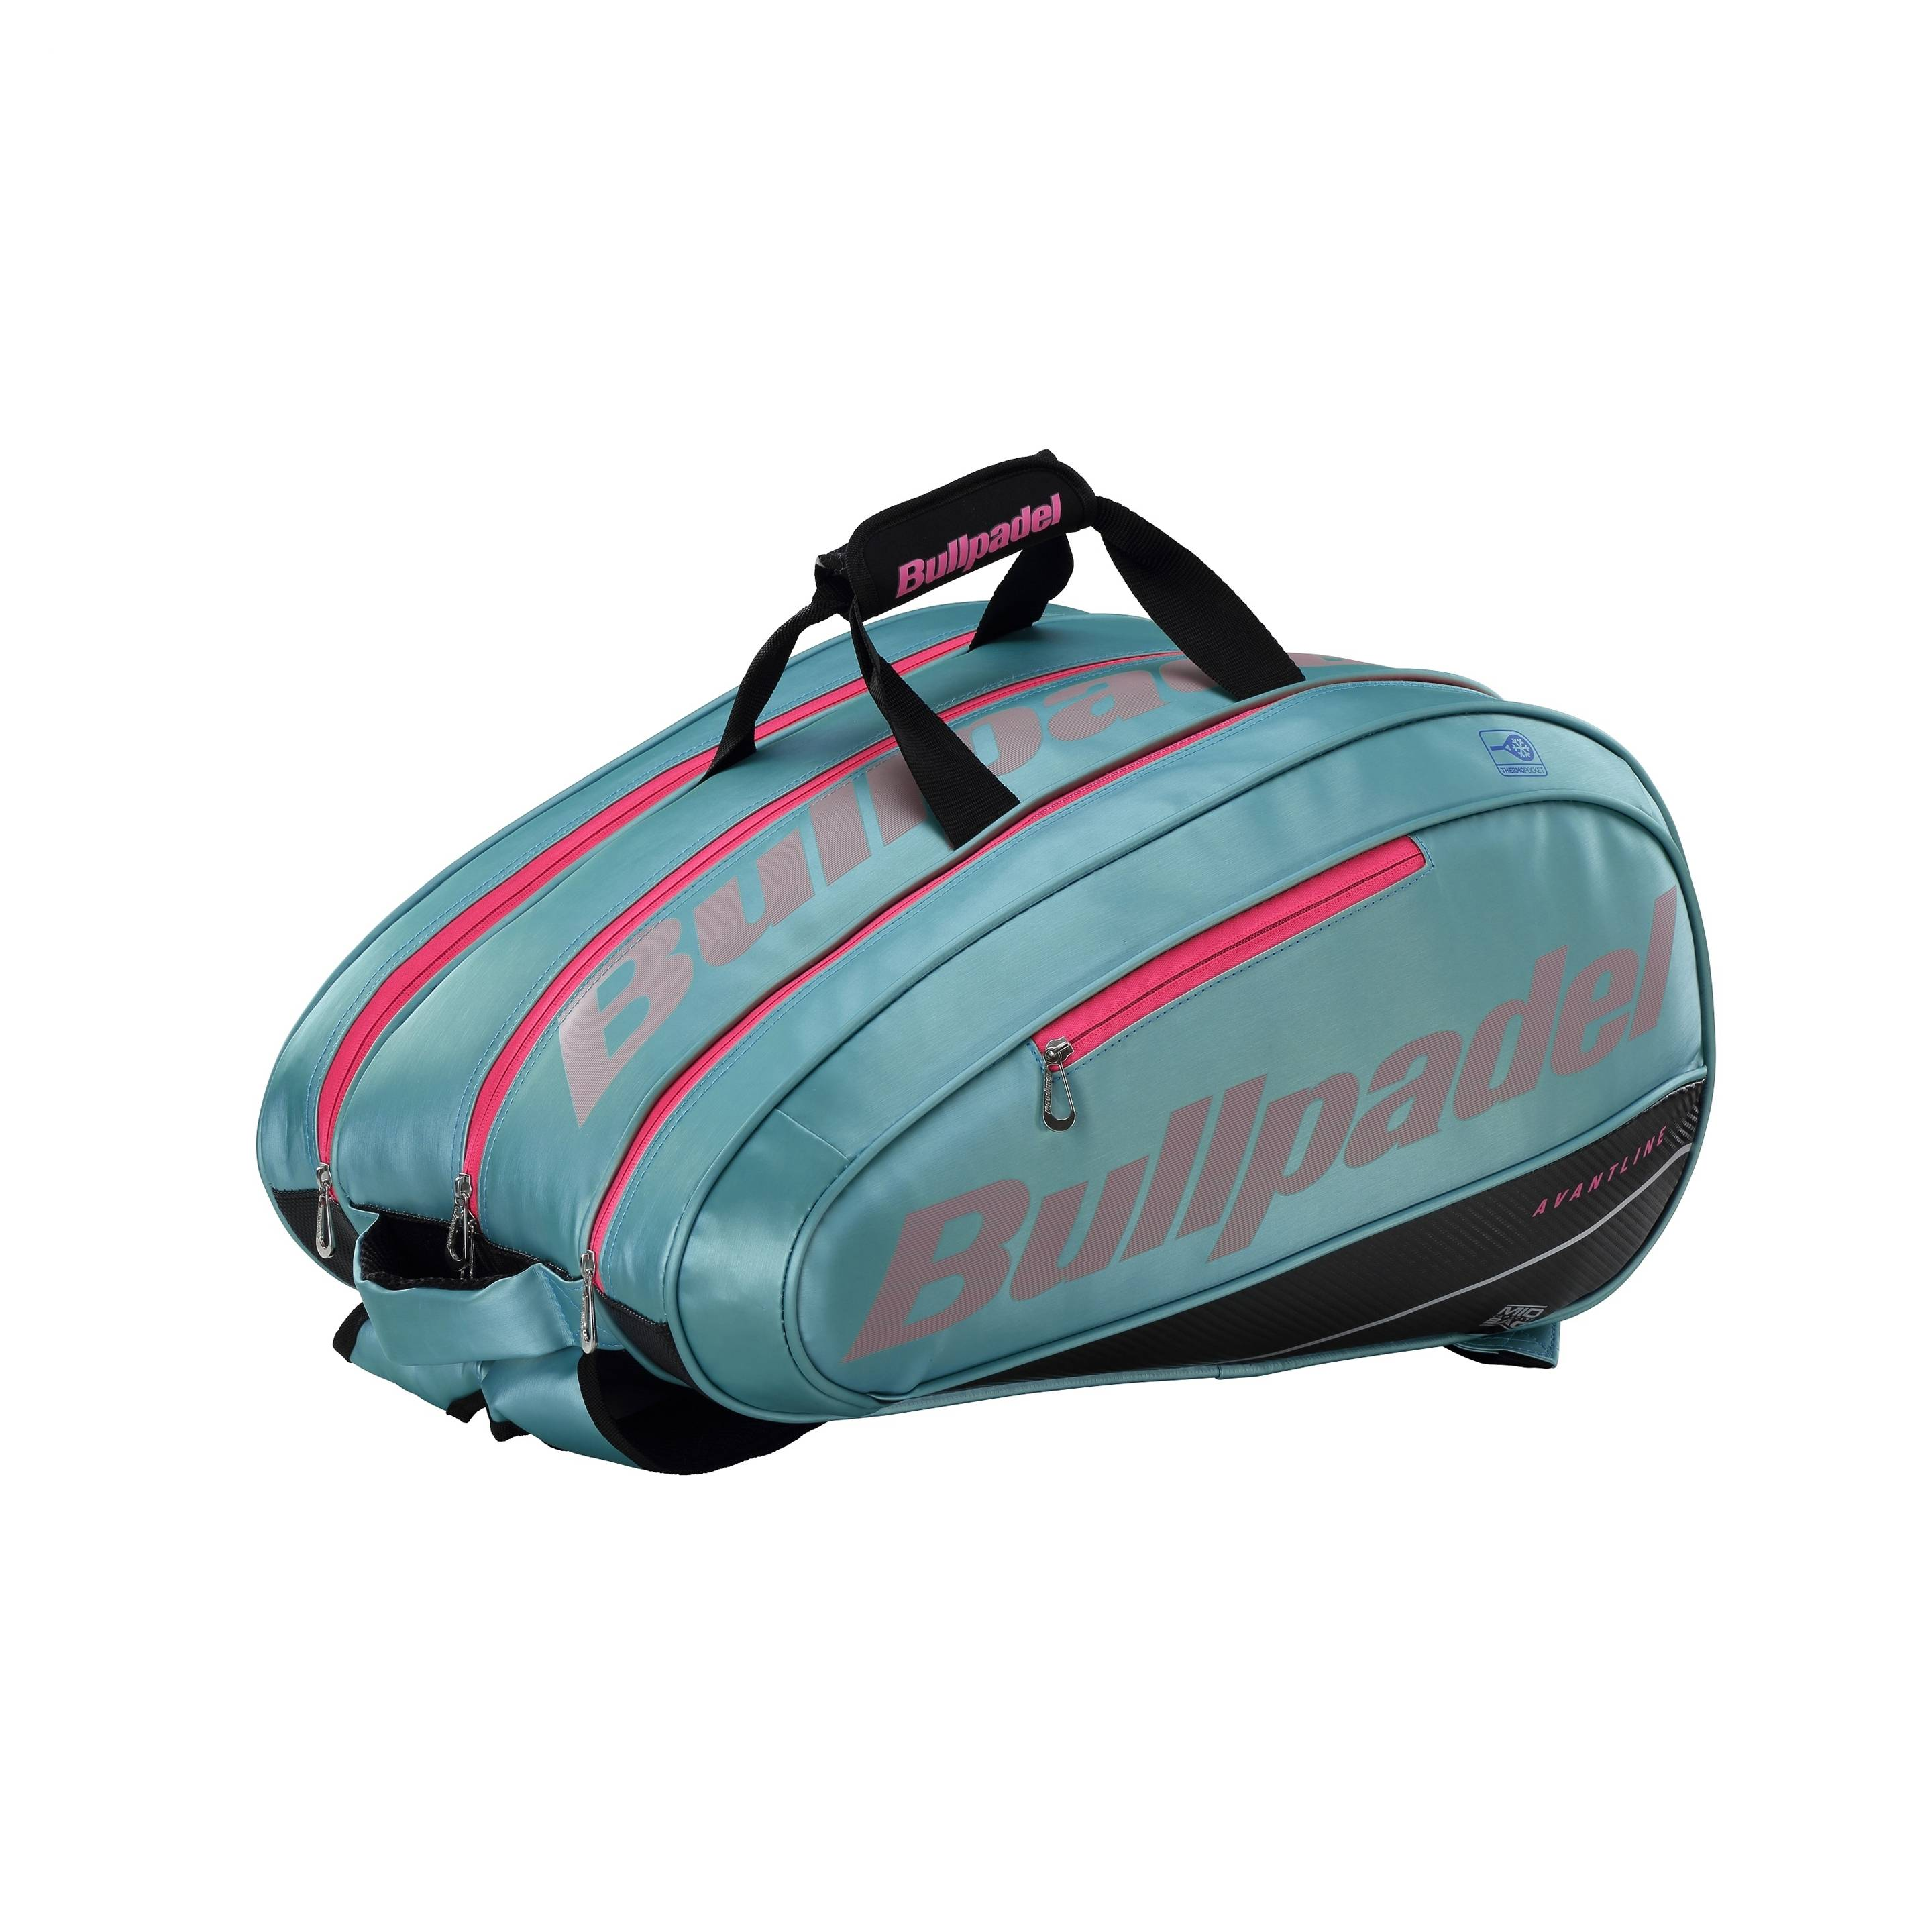 Bullpadel Avant Bag Blue/Pink